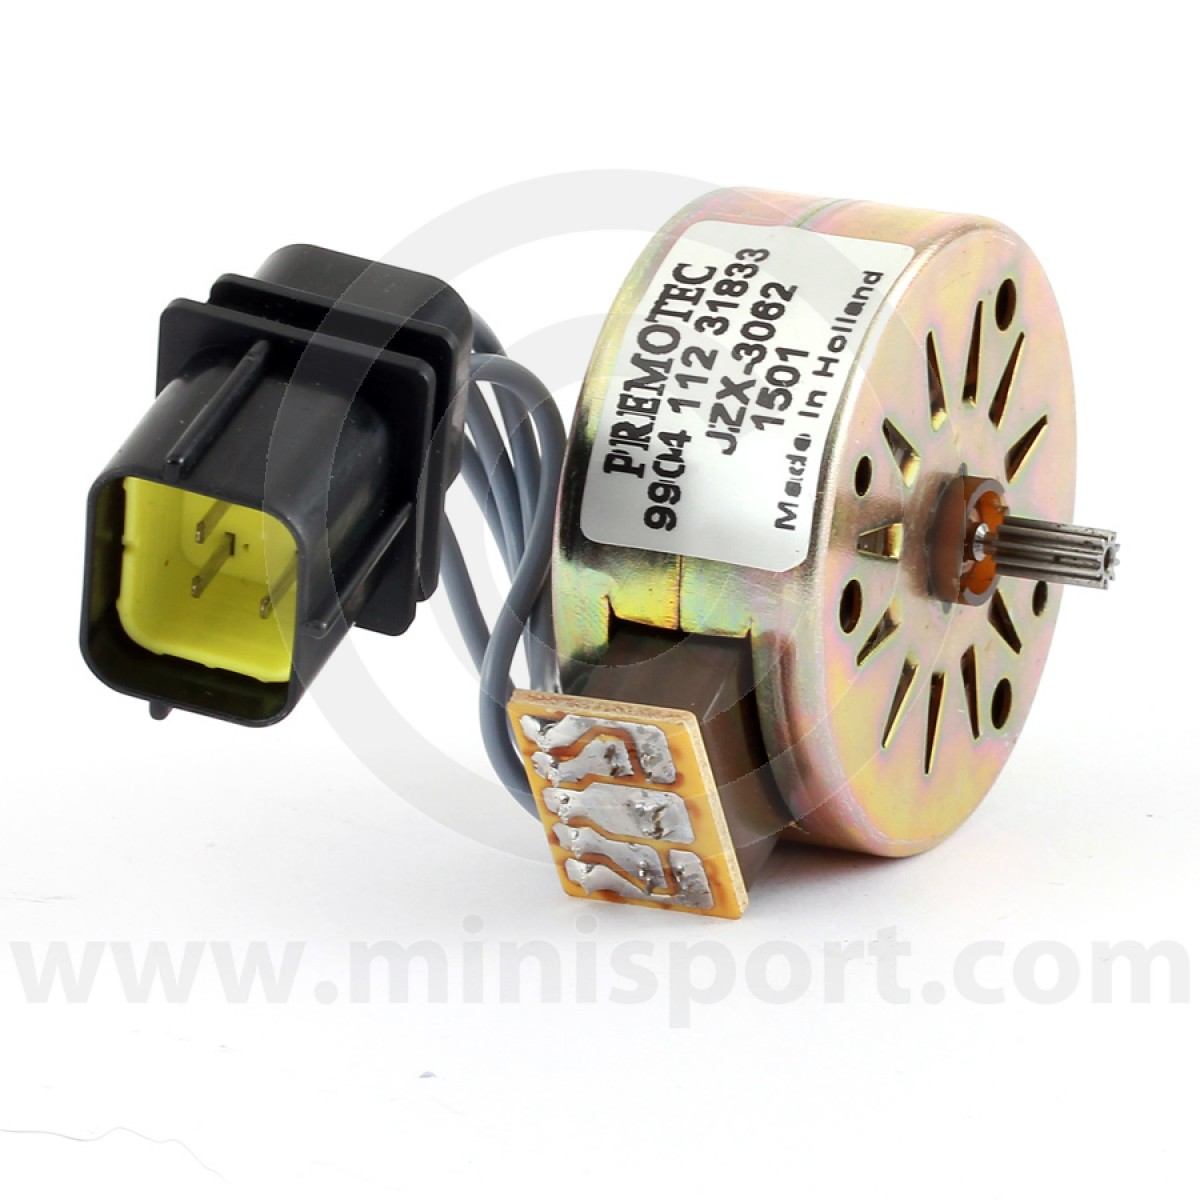 JZX3062 Mini SPi throttle assembly stepper motor